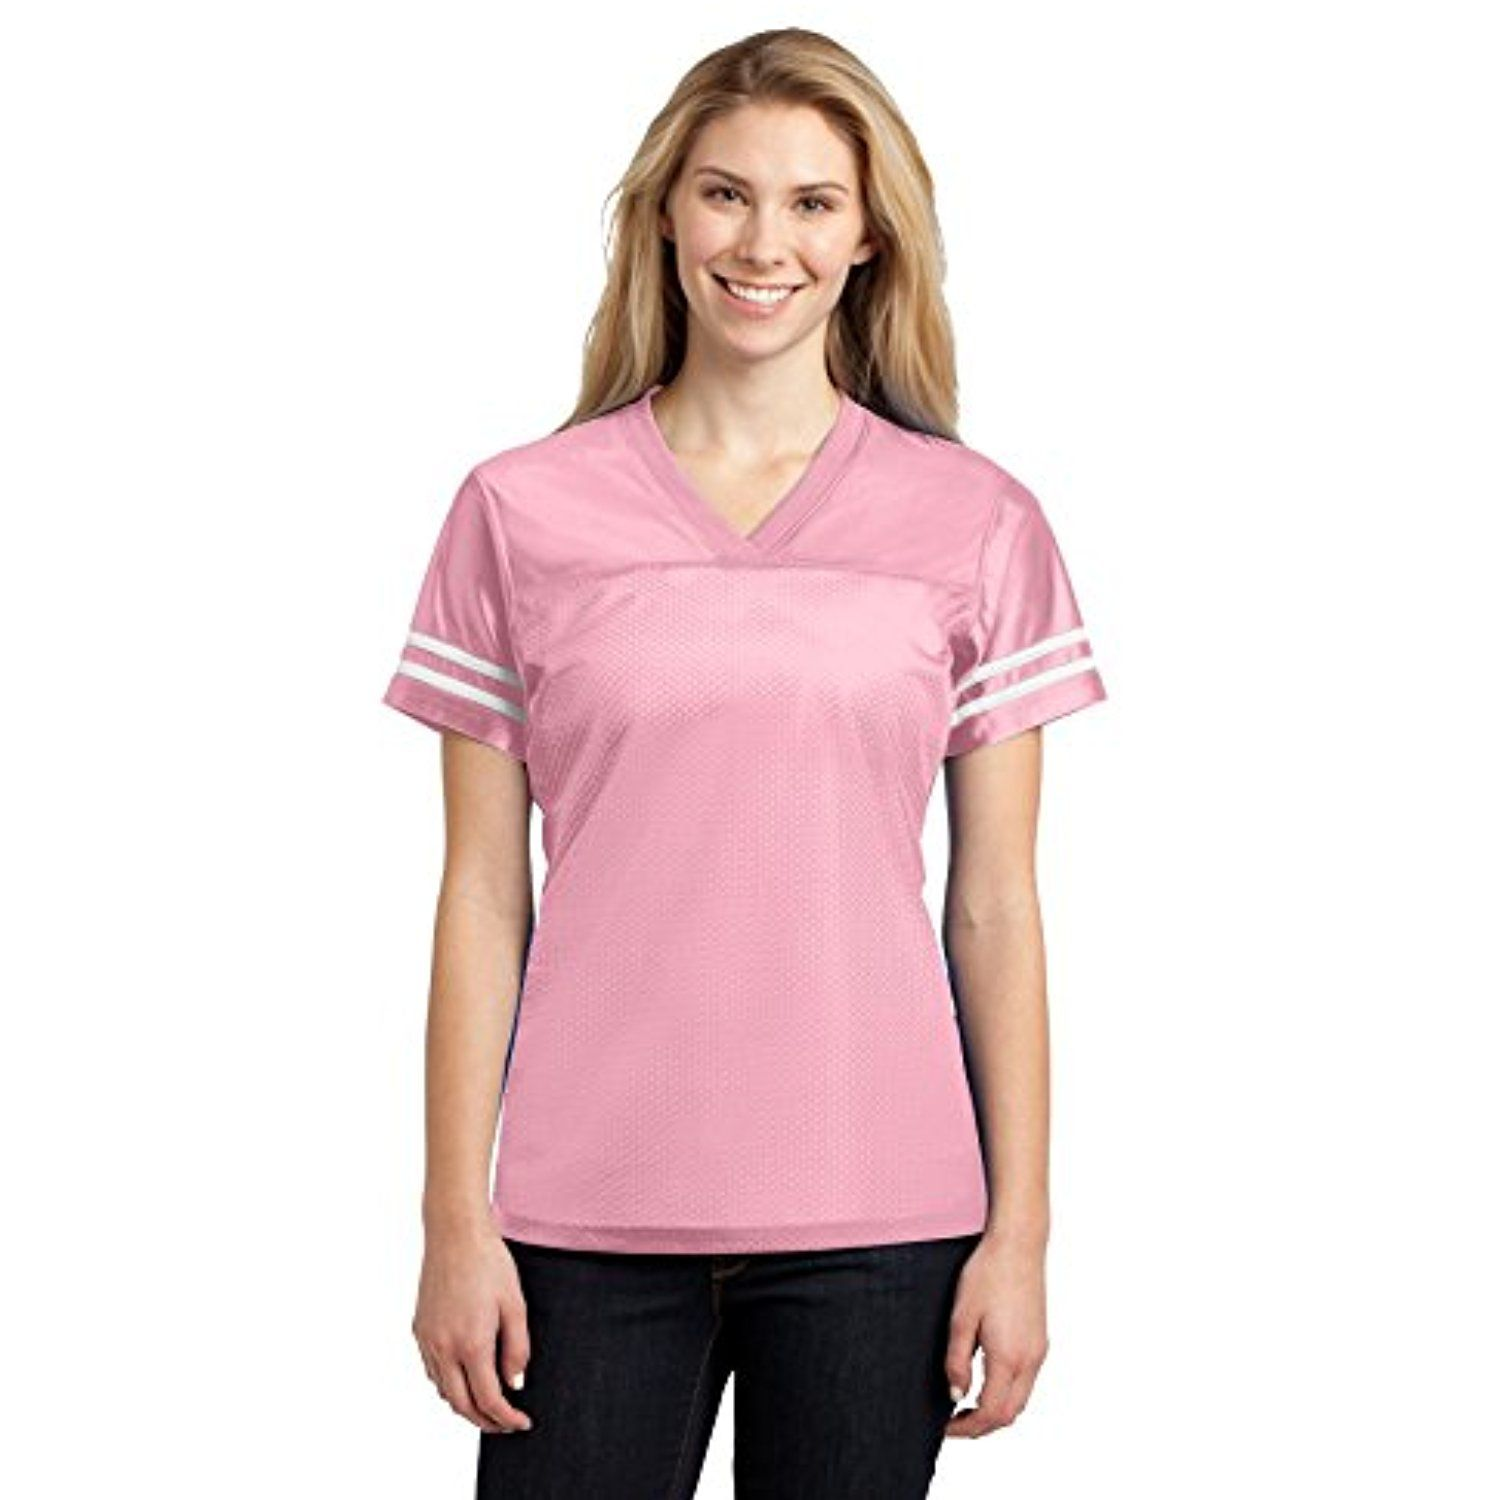 ac84c7c82 Sport-Tek Women s PosiCharge Replica Jersey     Want to know more ...